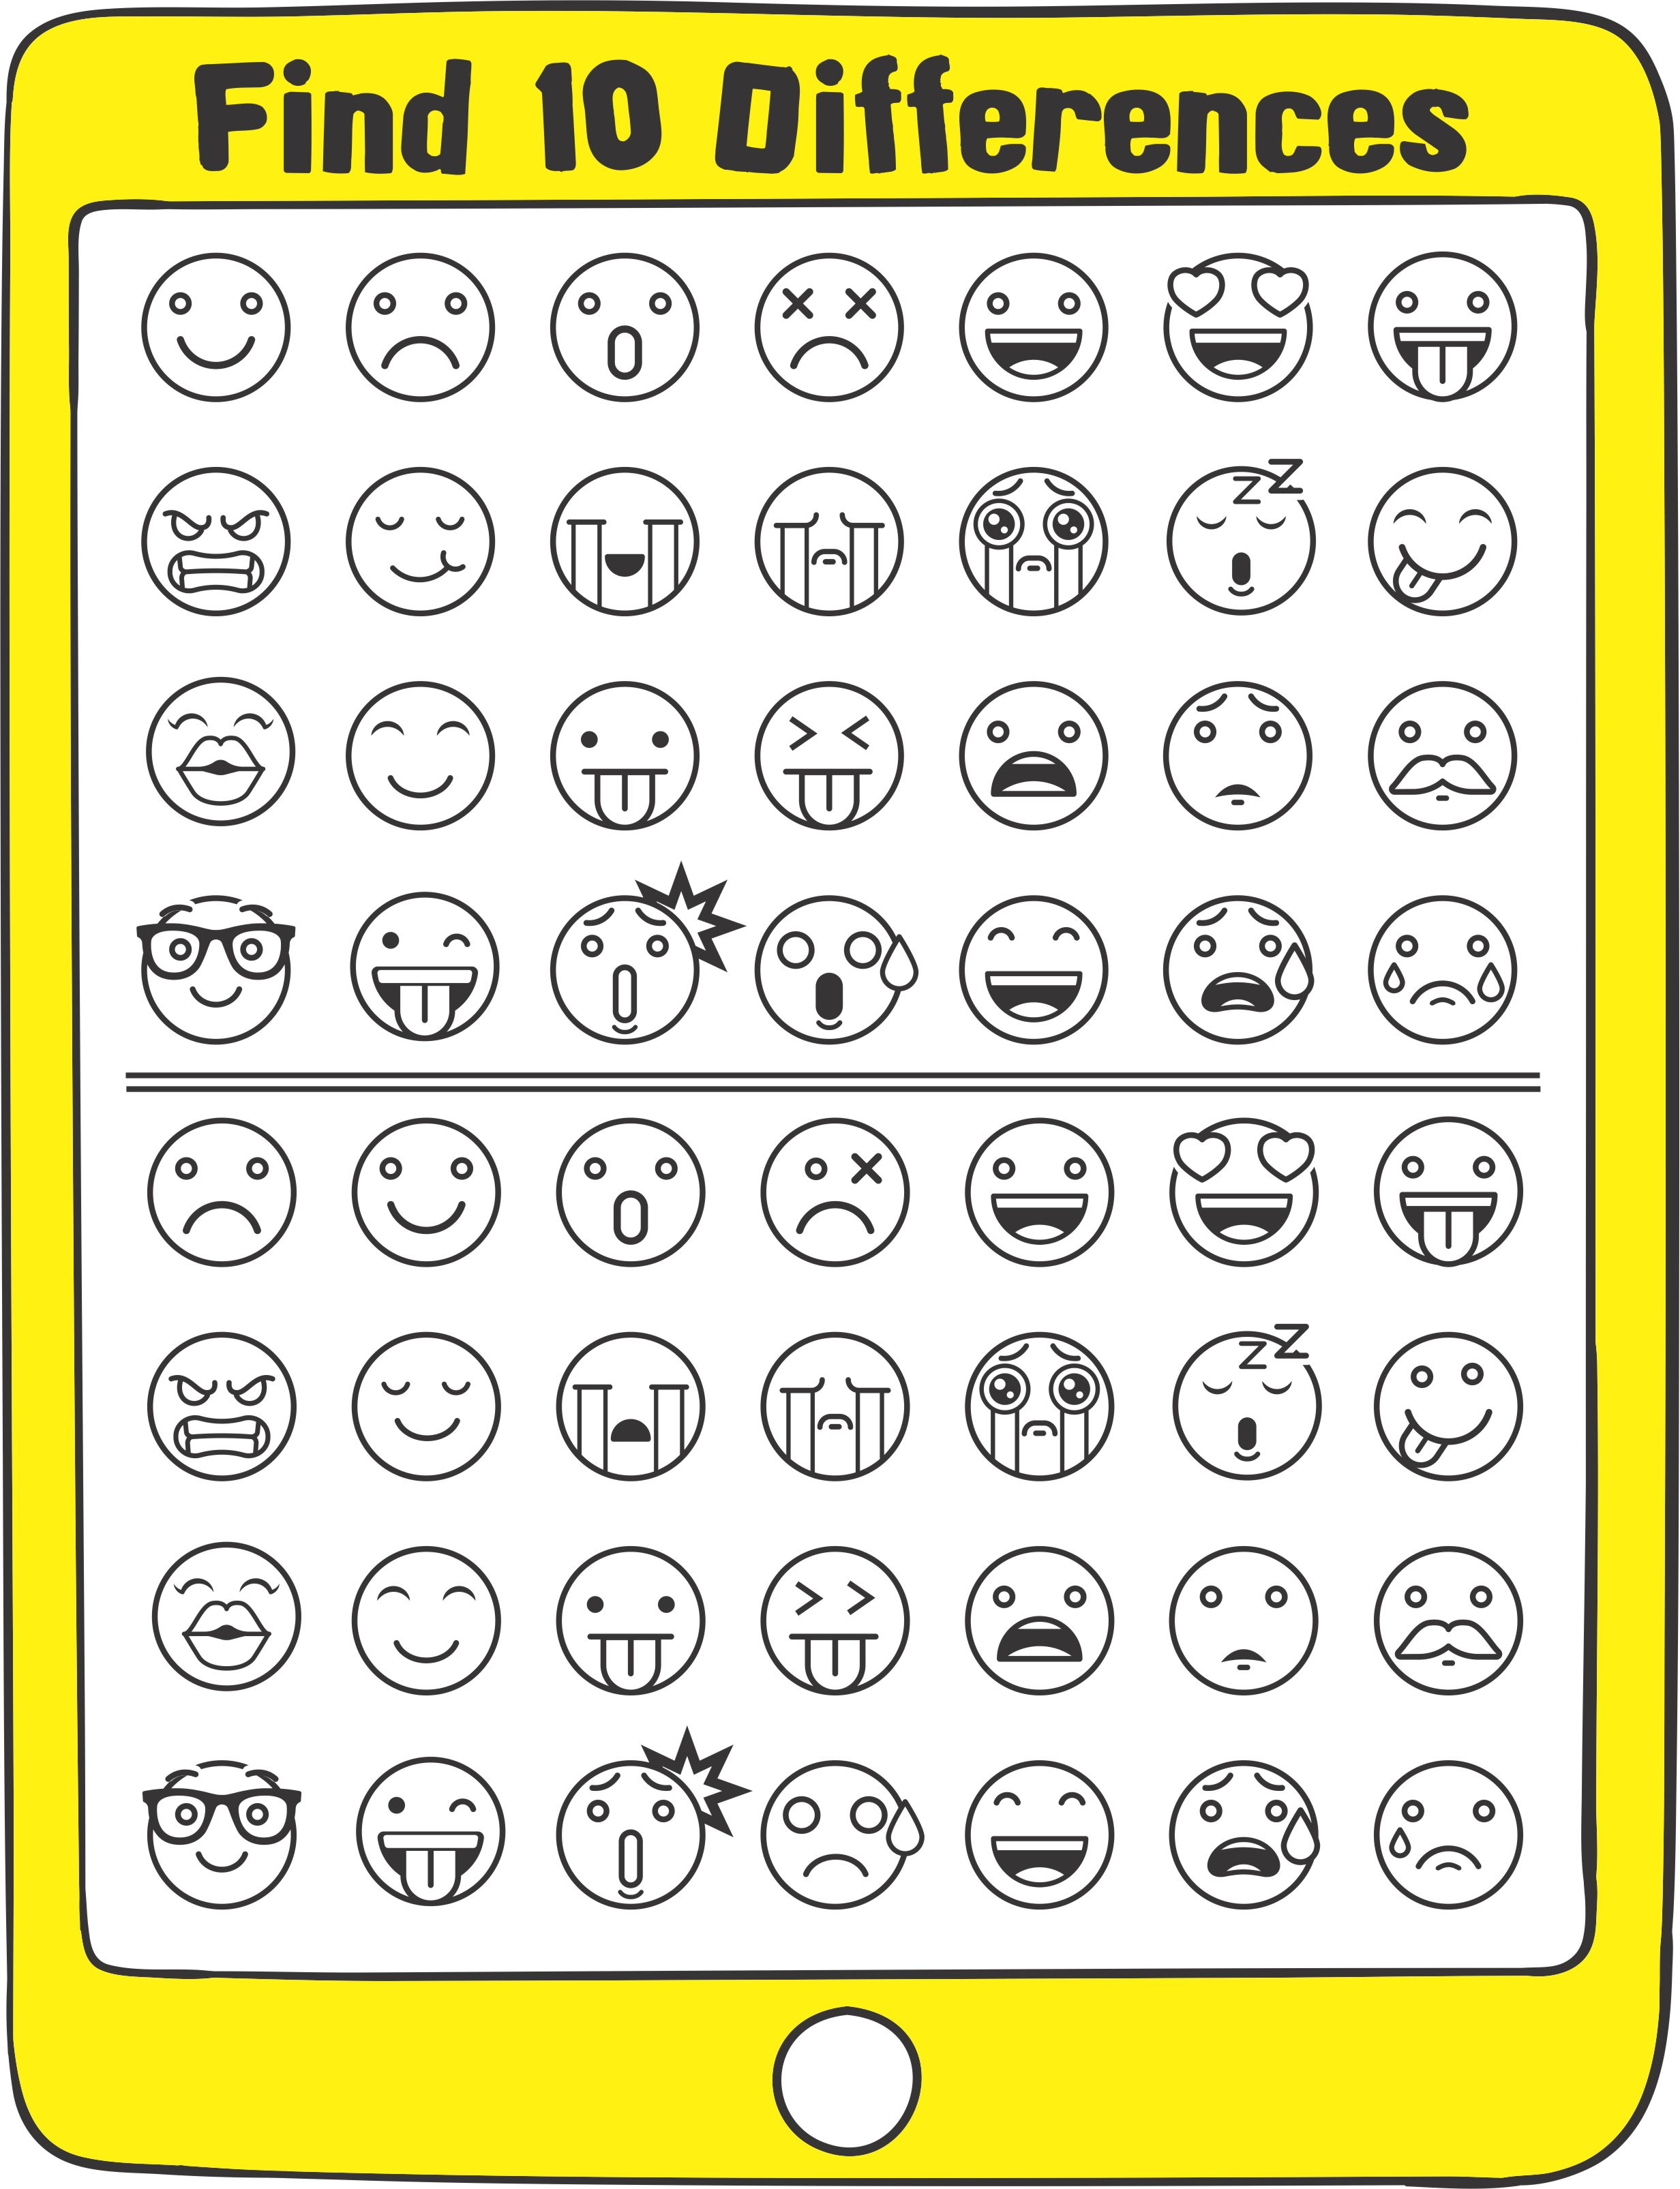 Emoji Sensory Motor Packet - free visual perceptual activity